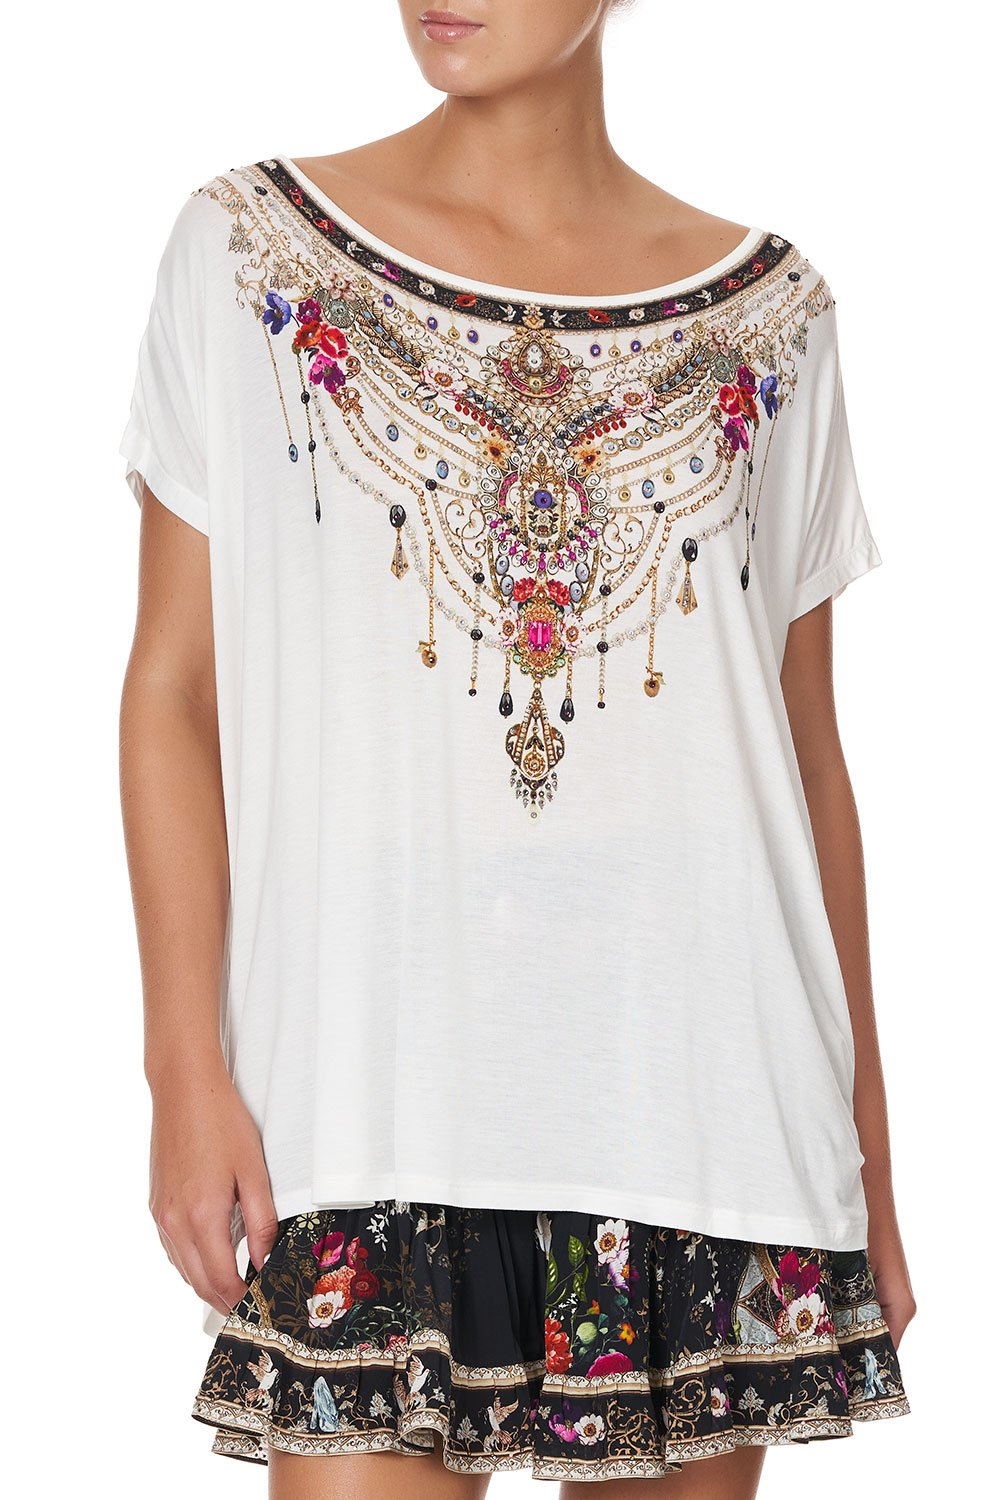 Fairy Godmother Loose Fit Round Neck Tee